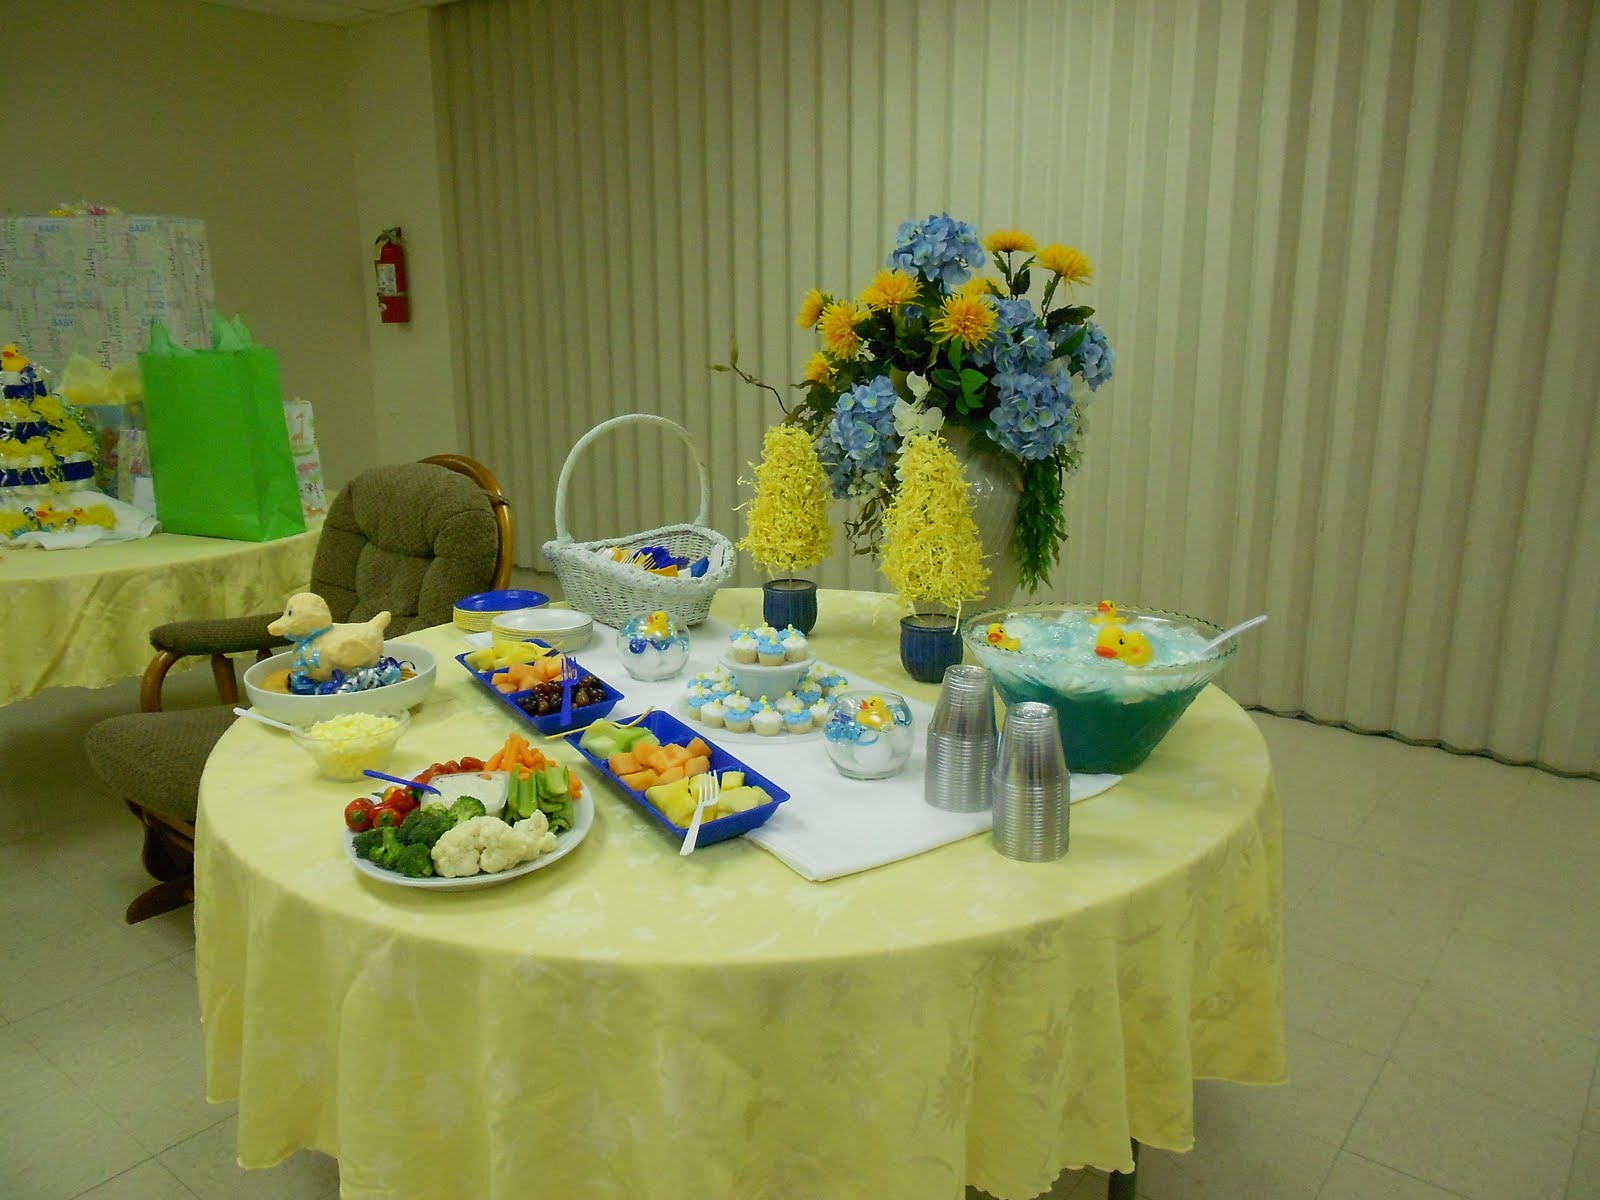 The Frakes 5 Ducky Baby Shower